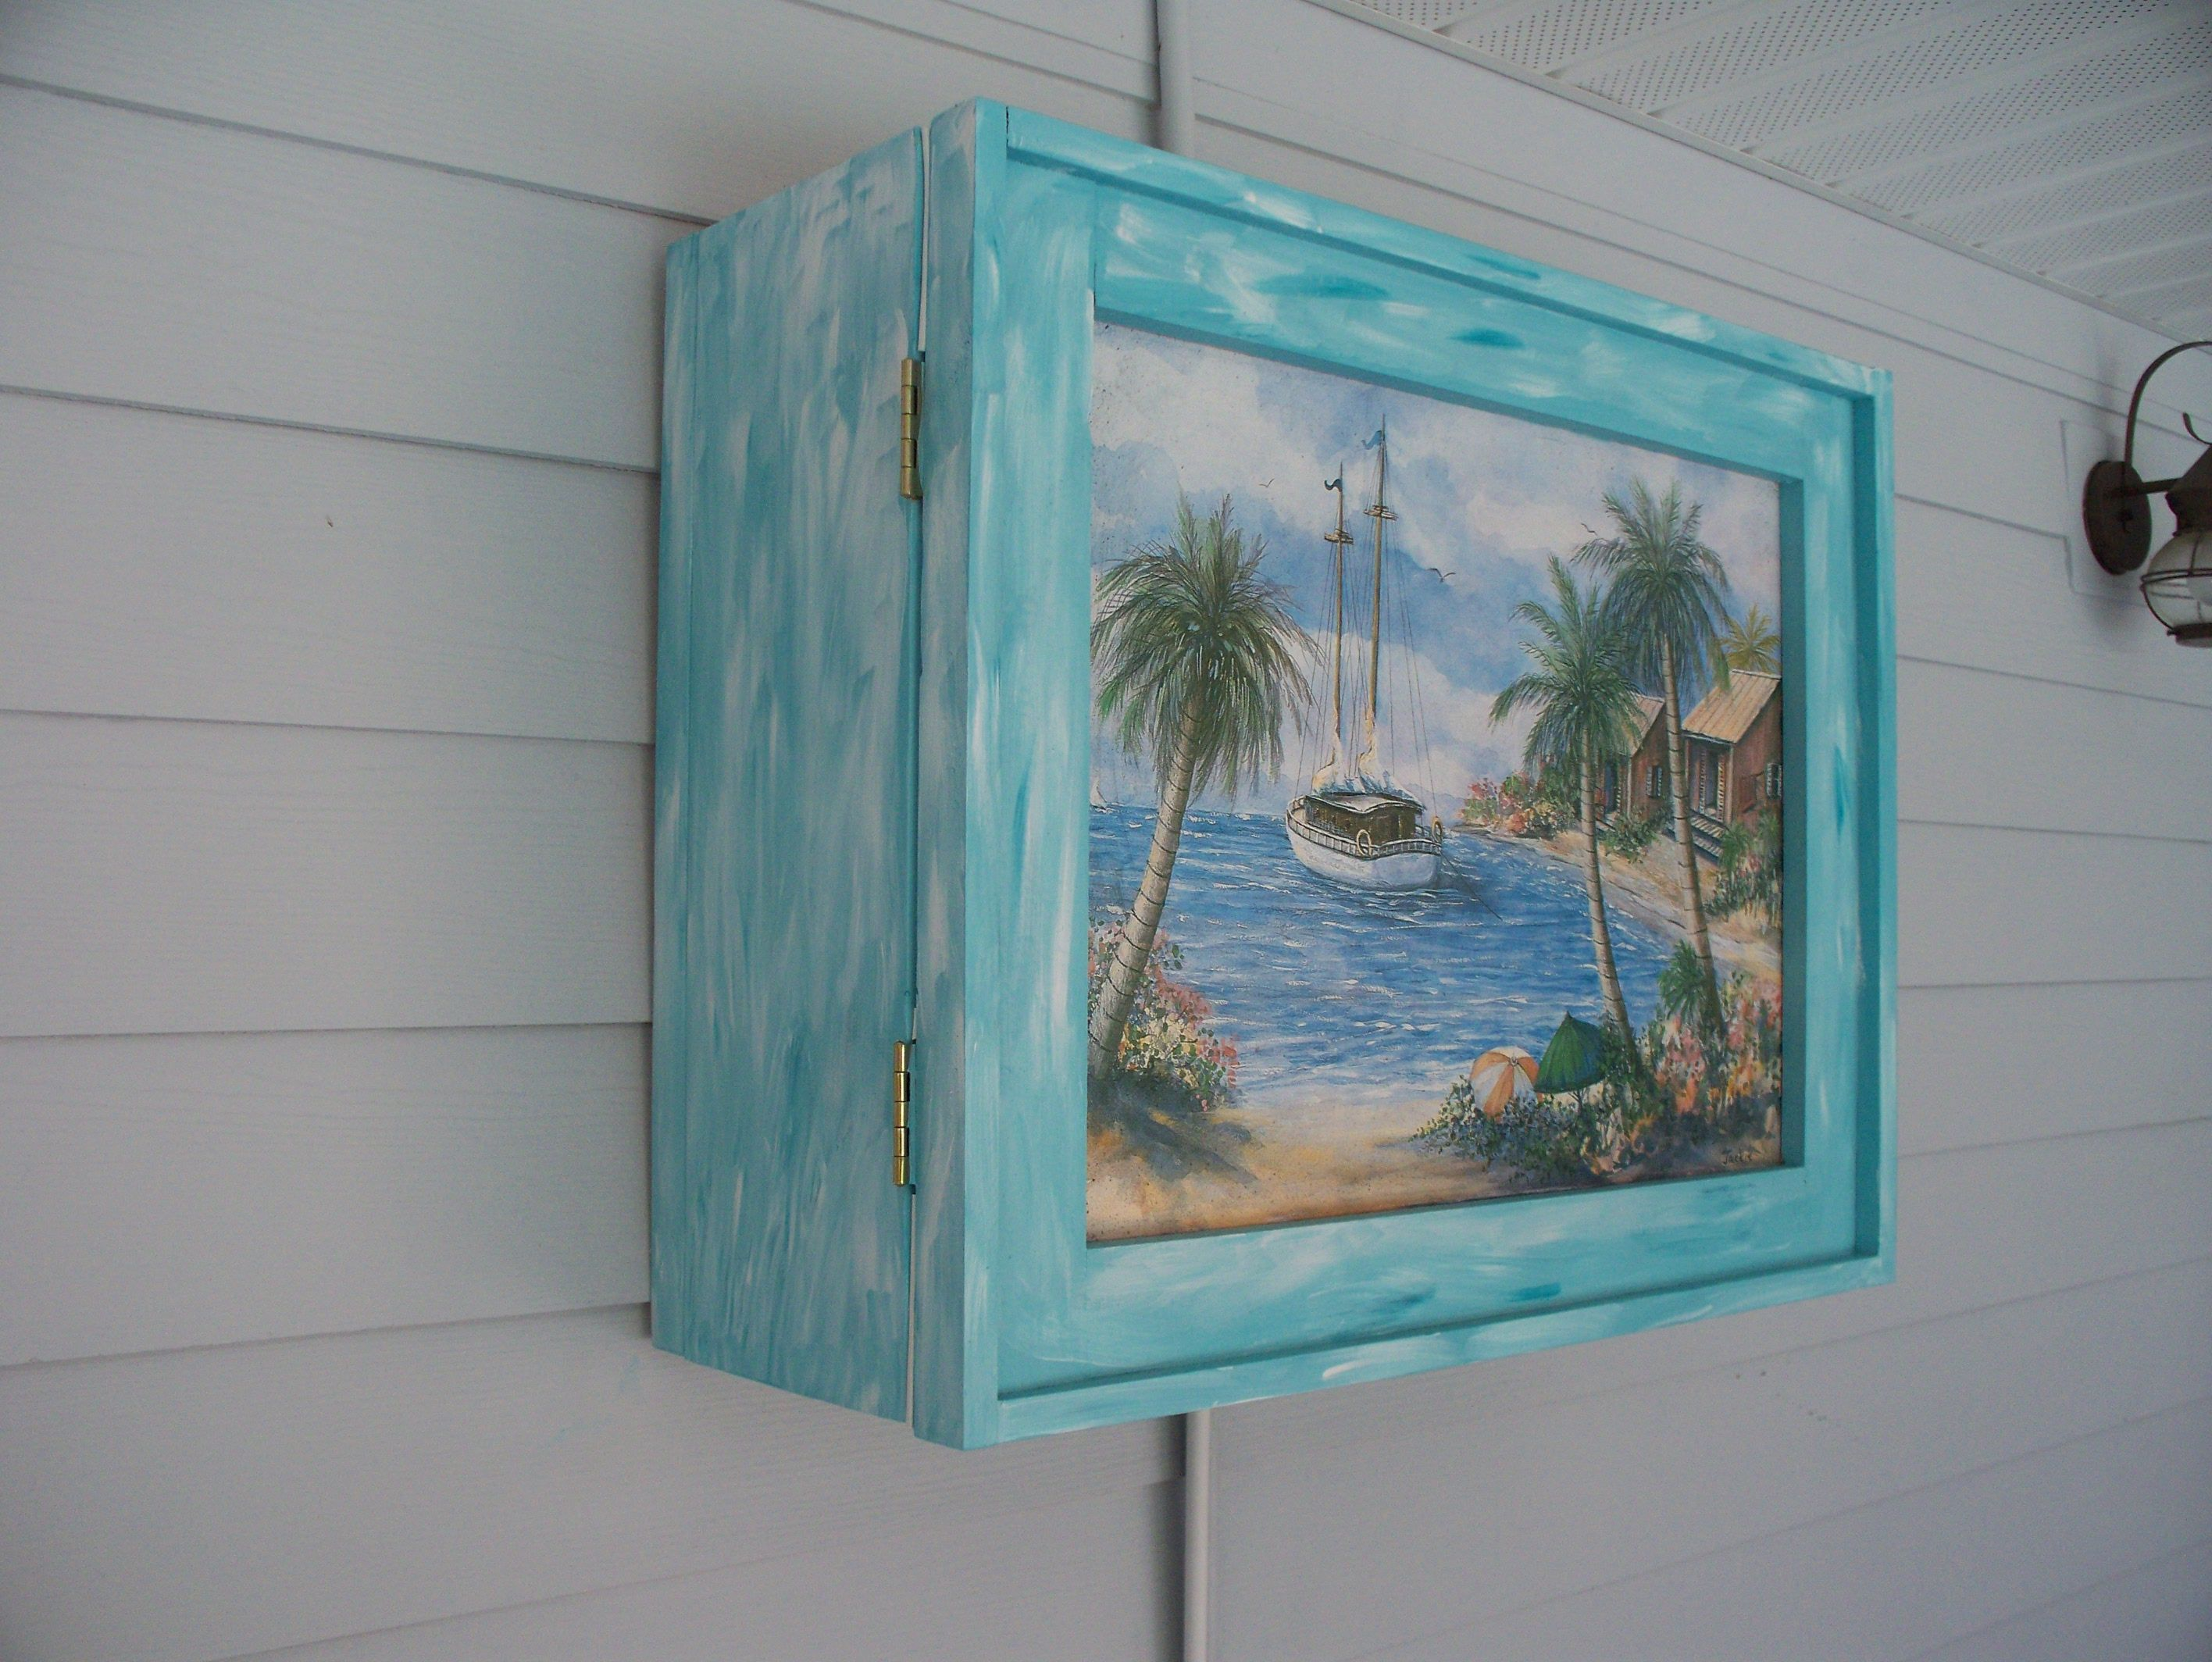 Amazing Blue Outdoor Tv Cabinet With Wooden Stuff At Grey Wooden ...